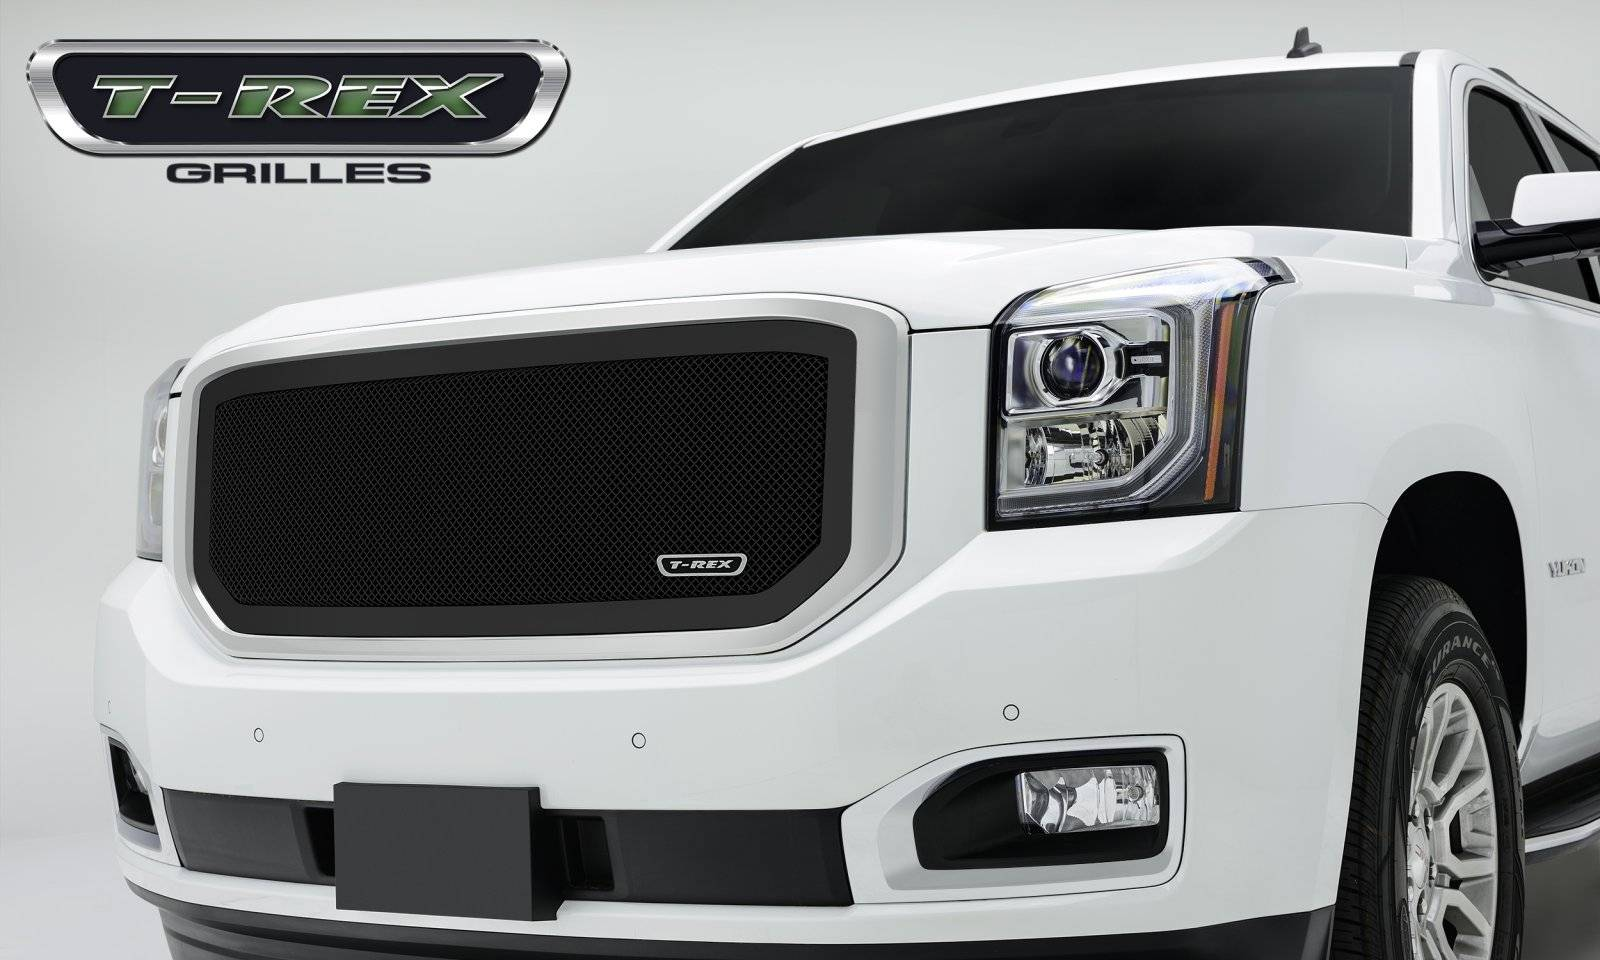 T-REX Grilles - GMC YUKON Upper Class Mesh Grille - All Black - Pt # 51169